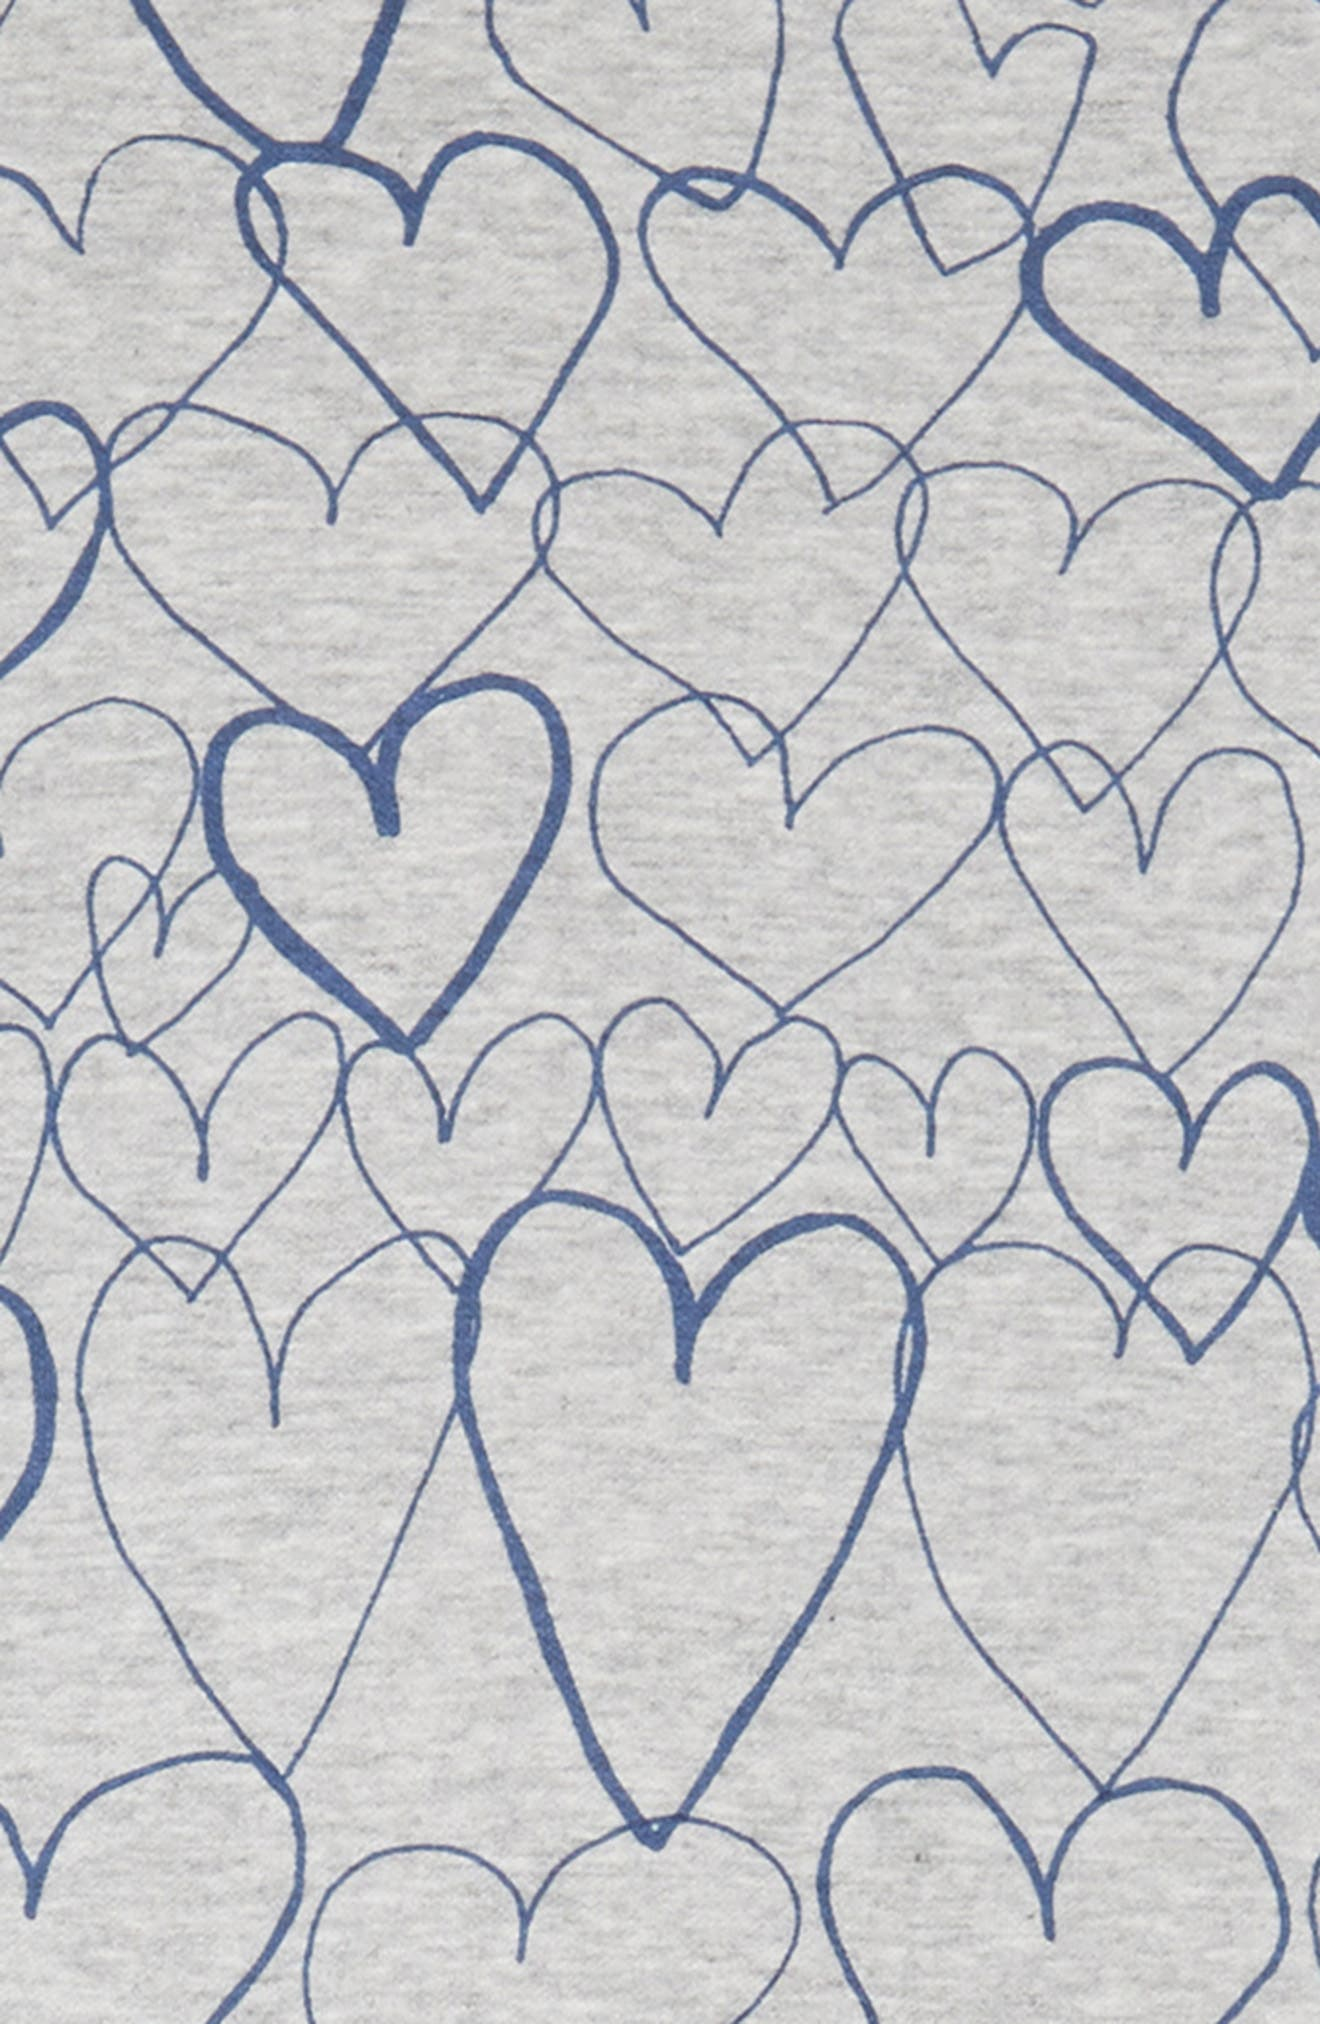 Marion Heart Print Dress,                             Alternate thumbnail 3, color,                             GREY BLUE